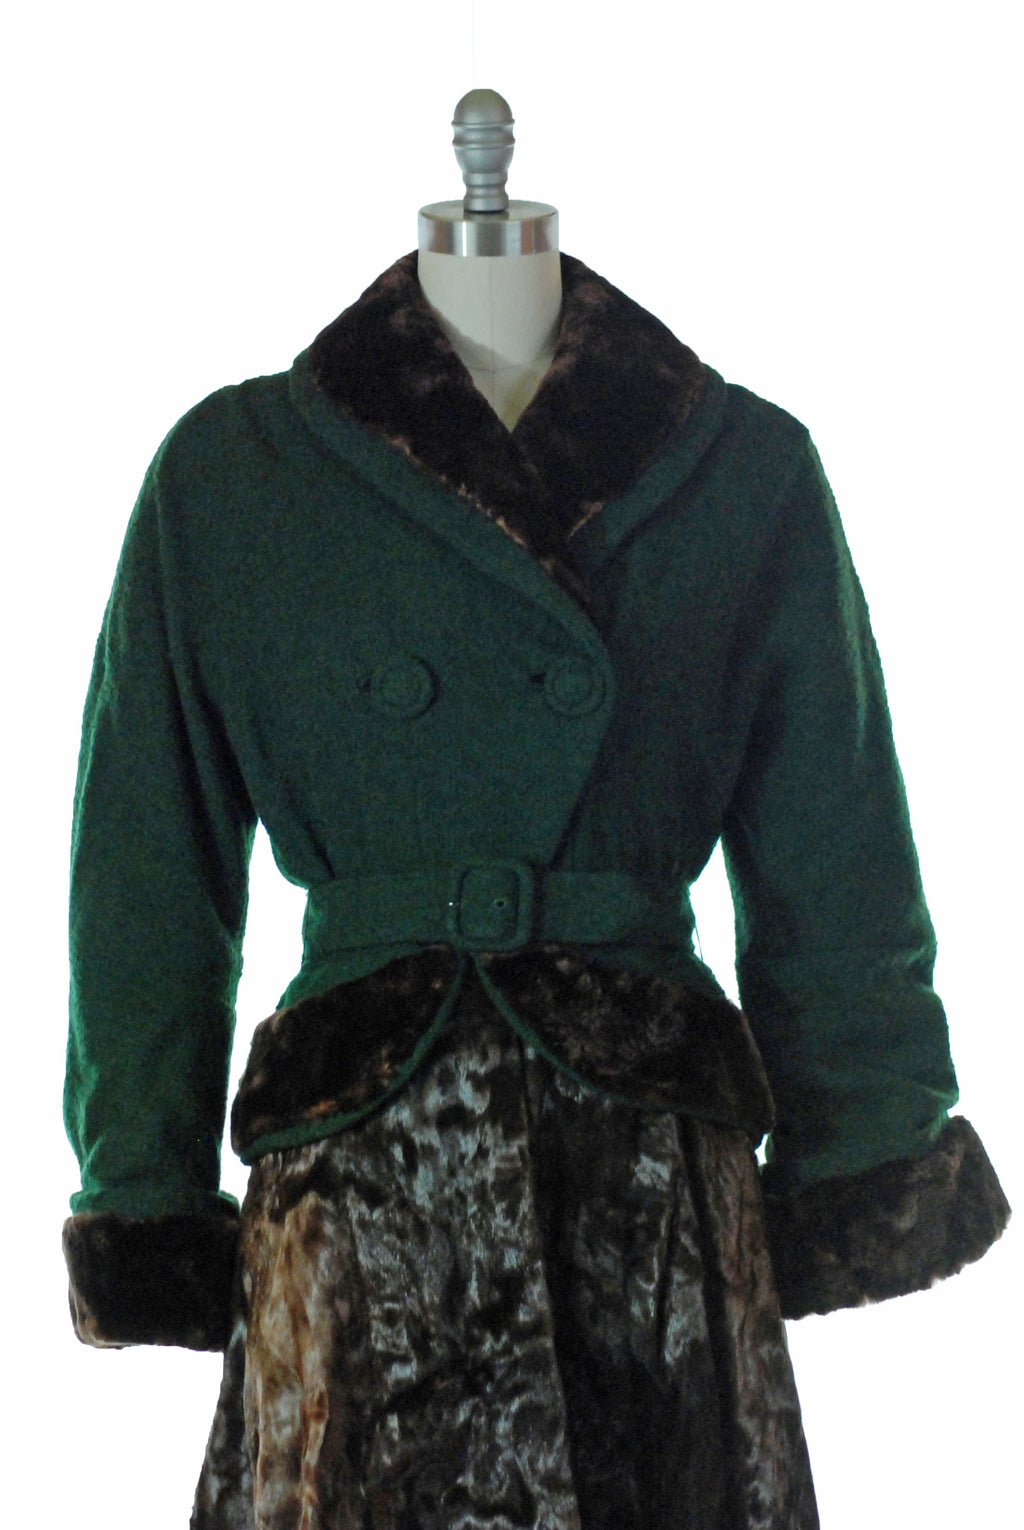 Amazing 1950s New Look Wool Boucle Coat with Pony Fur Skirt and Sheared Mink Trim